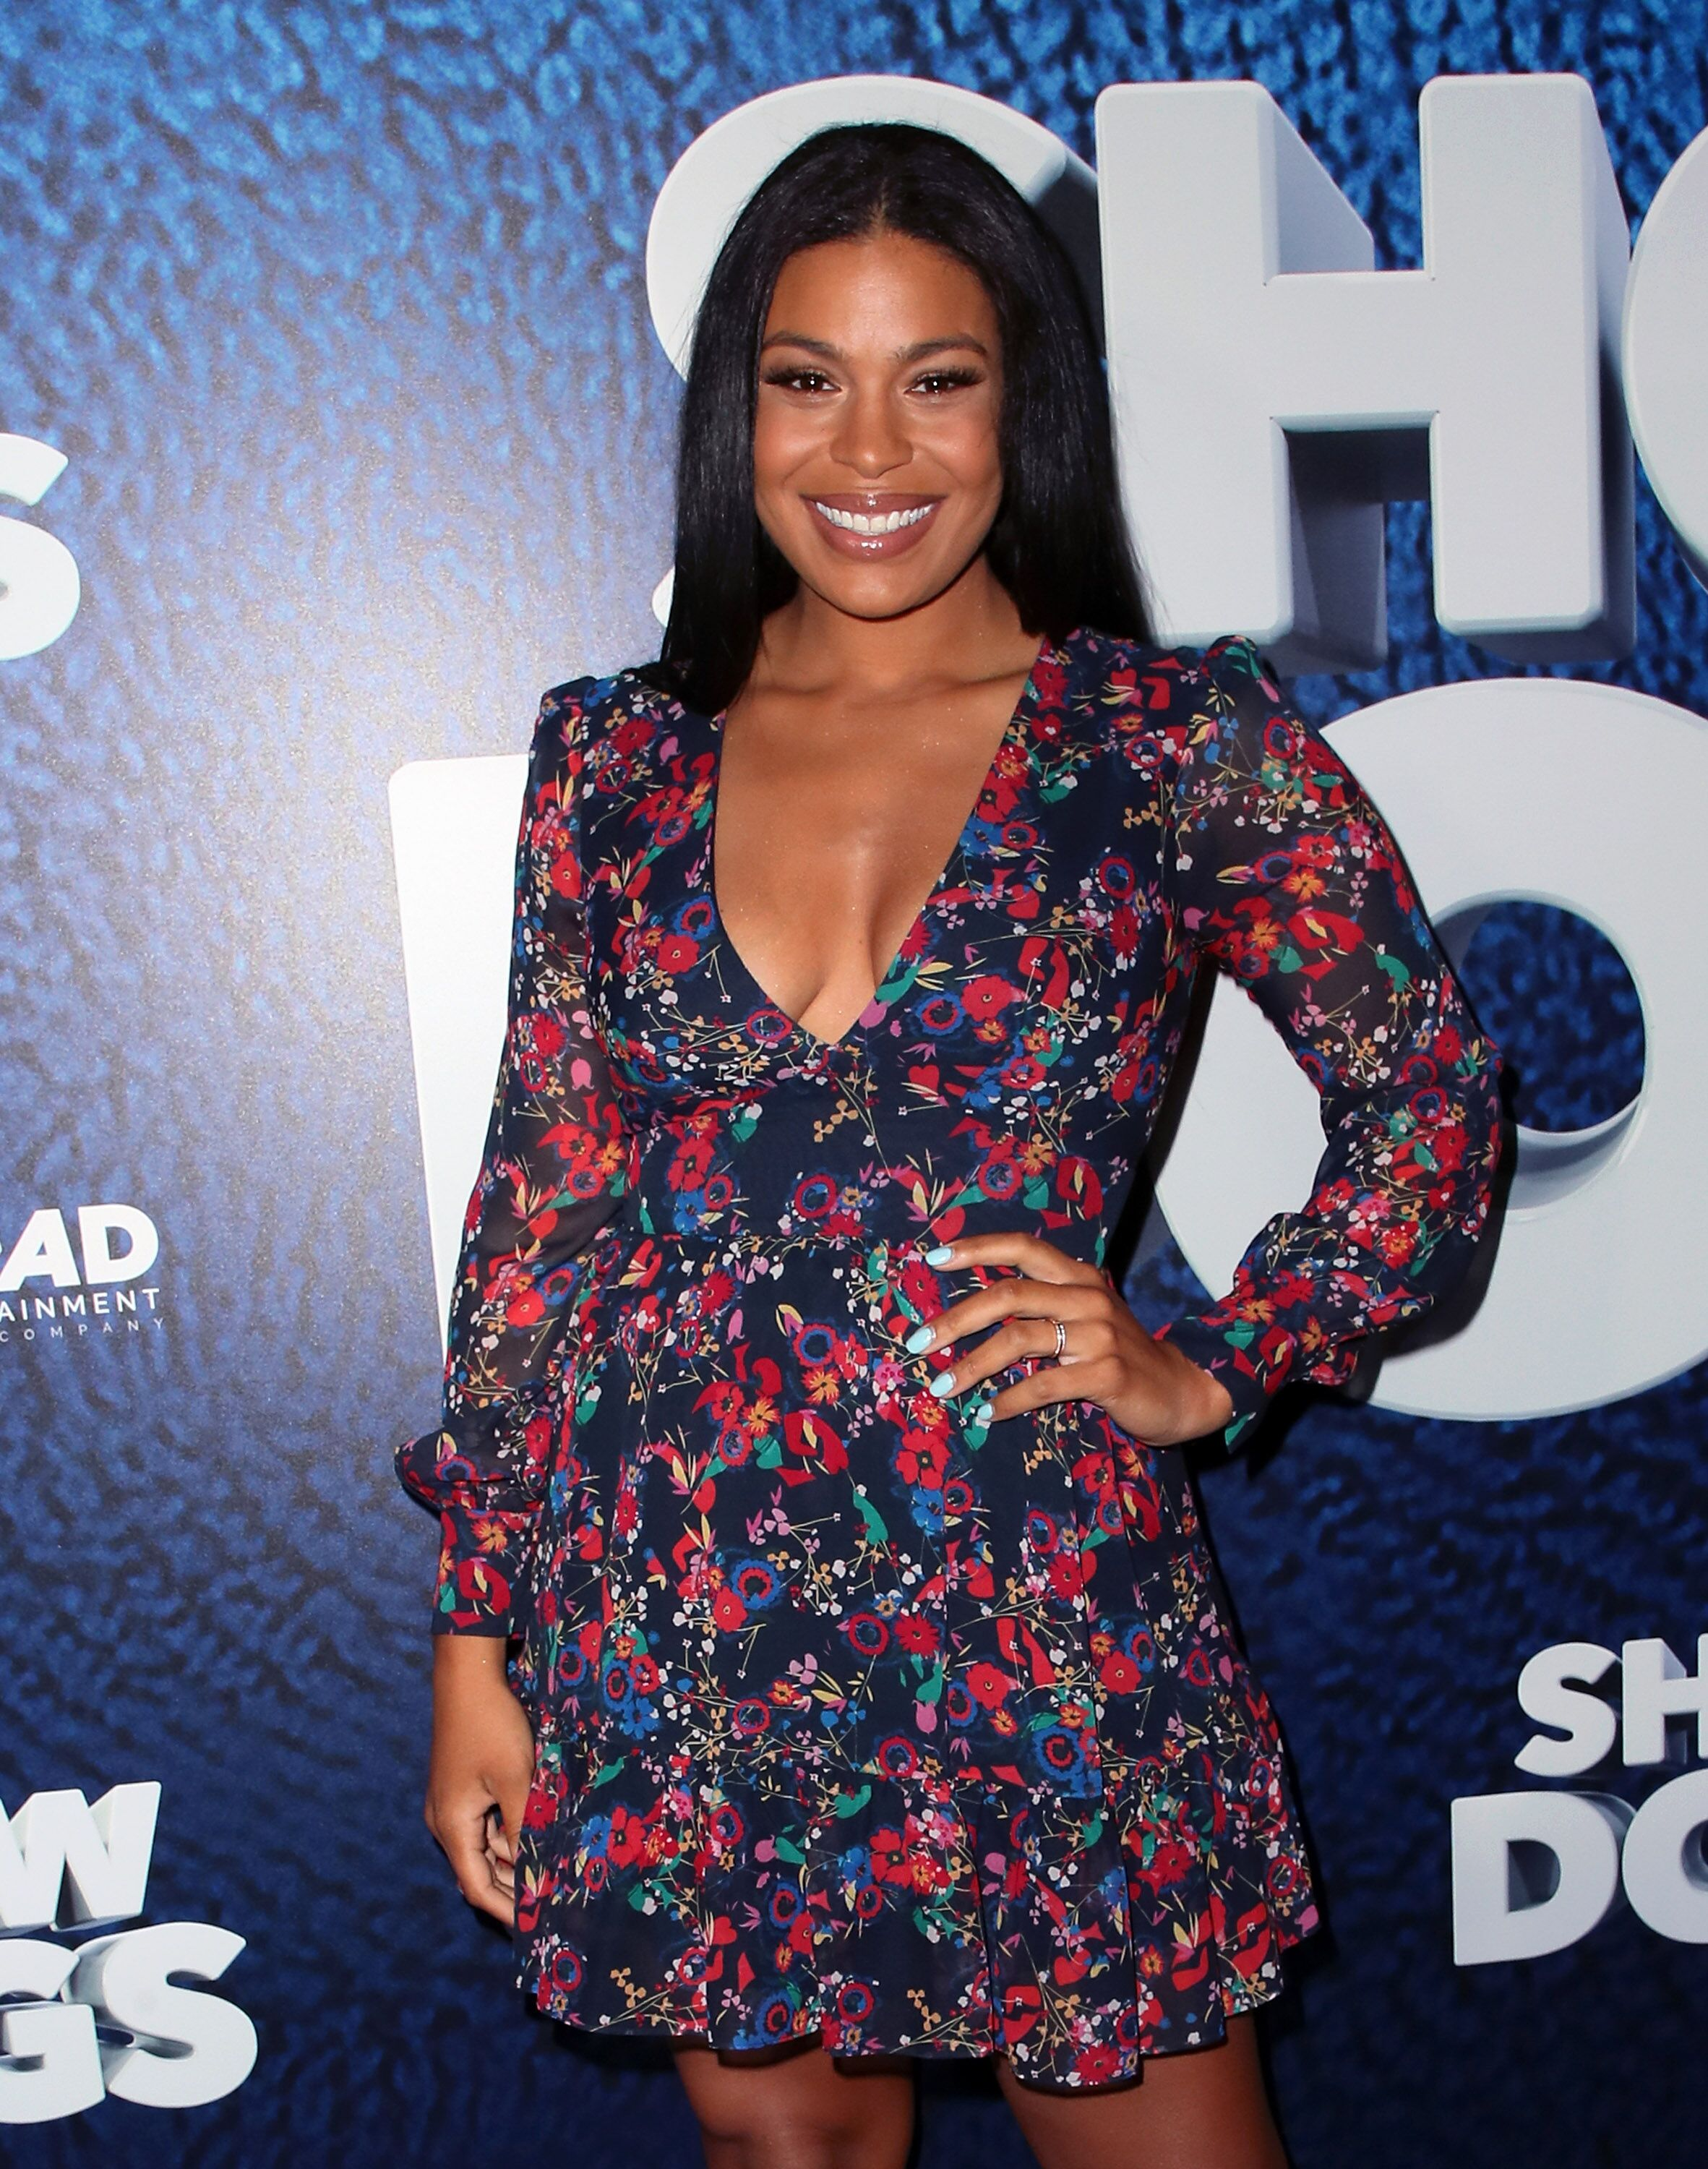 """Jordin Sparks attending the 2018 cop comedy """"Show Dogs"""" movie premiere   Image: Getty Images"""